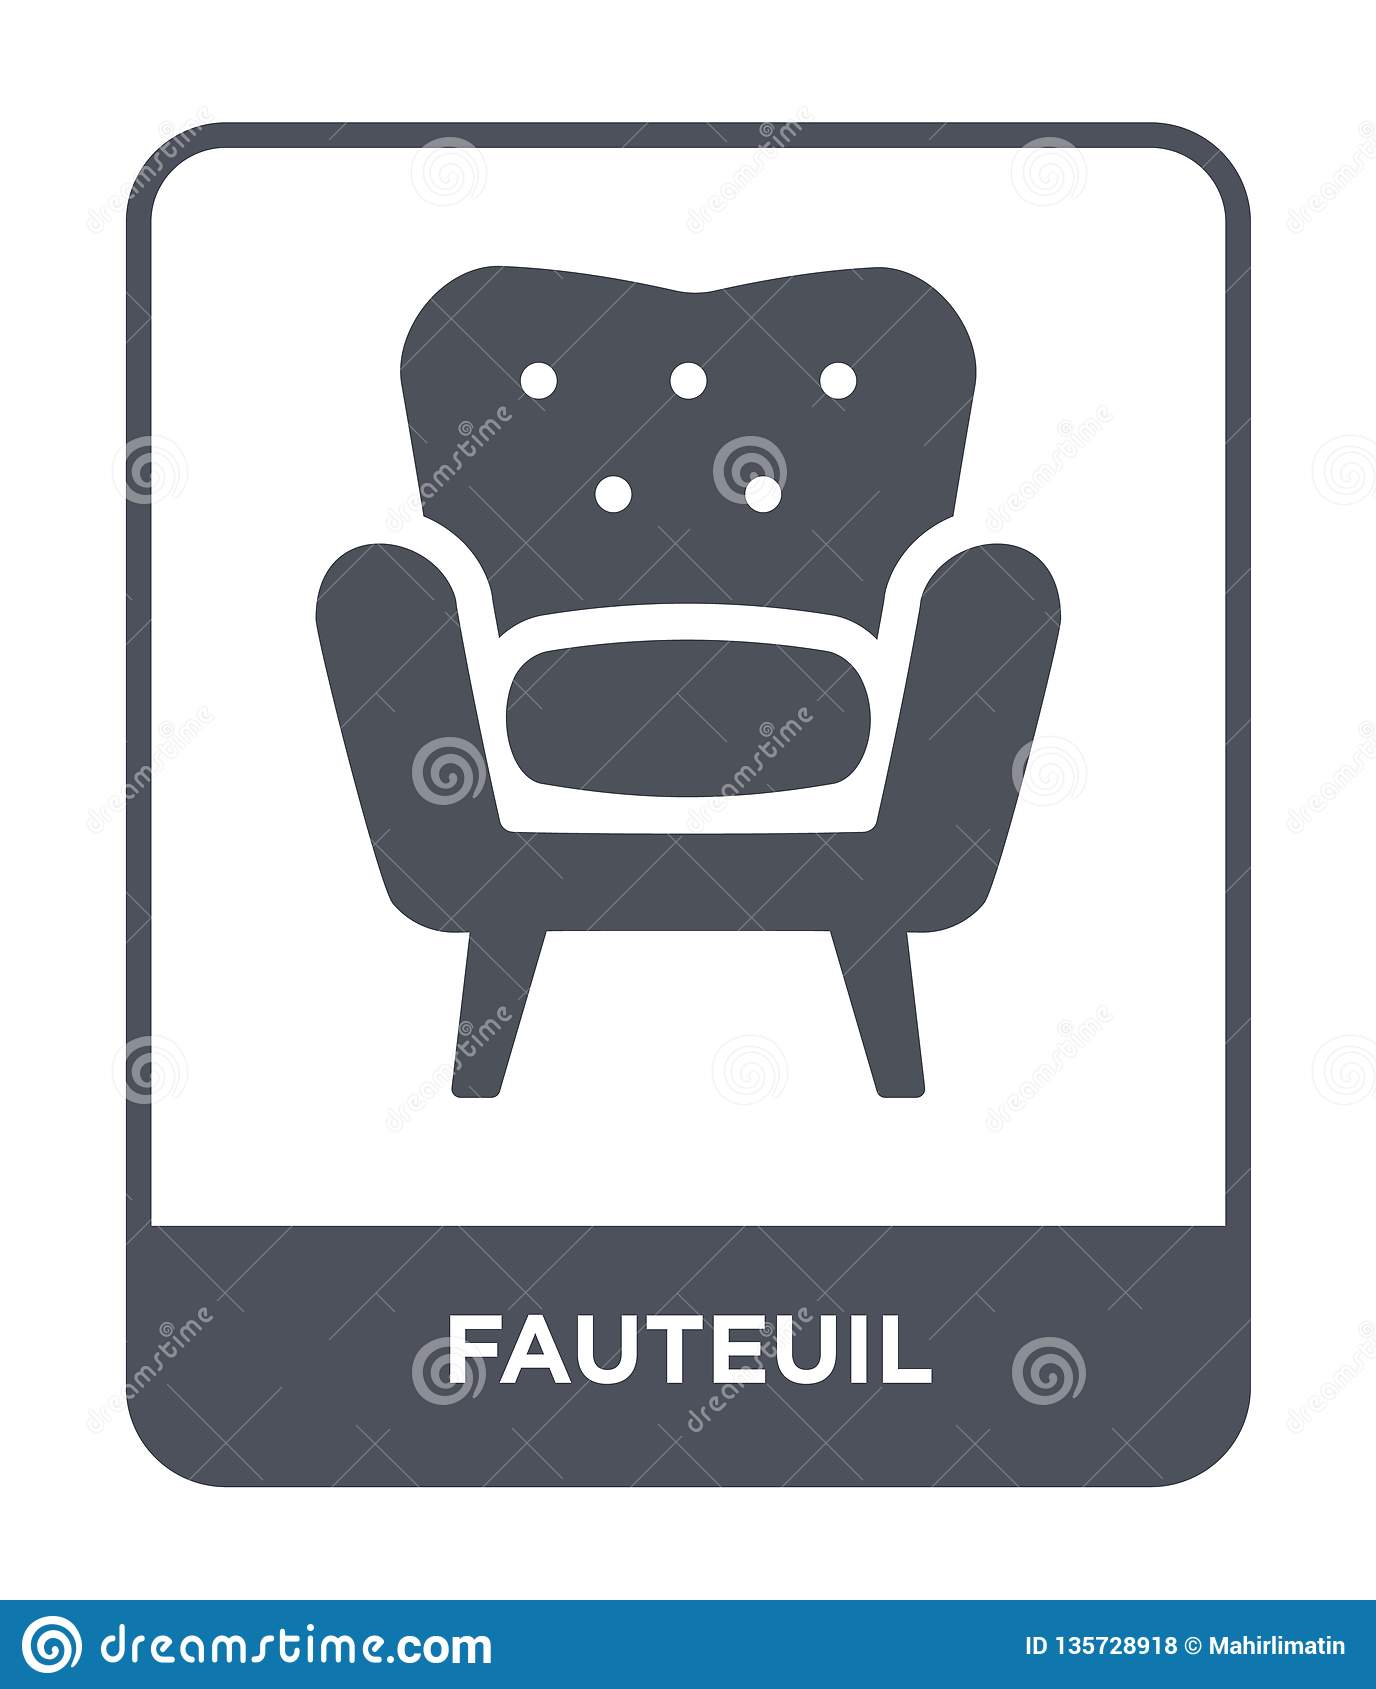 Retro Design Fauteuil.Fauteuil Icon In Trendy Design Style Fauteuil Icon Isolated On